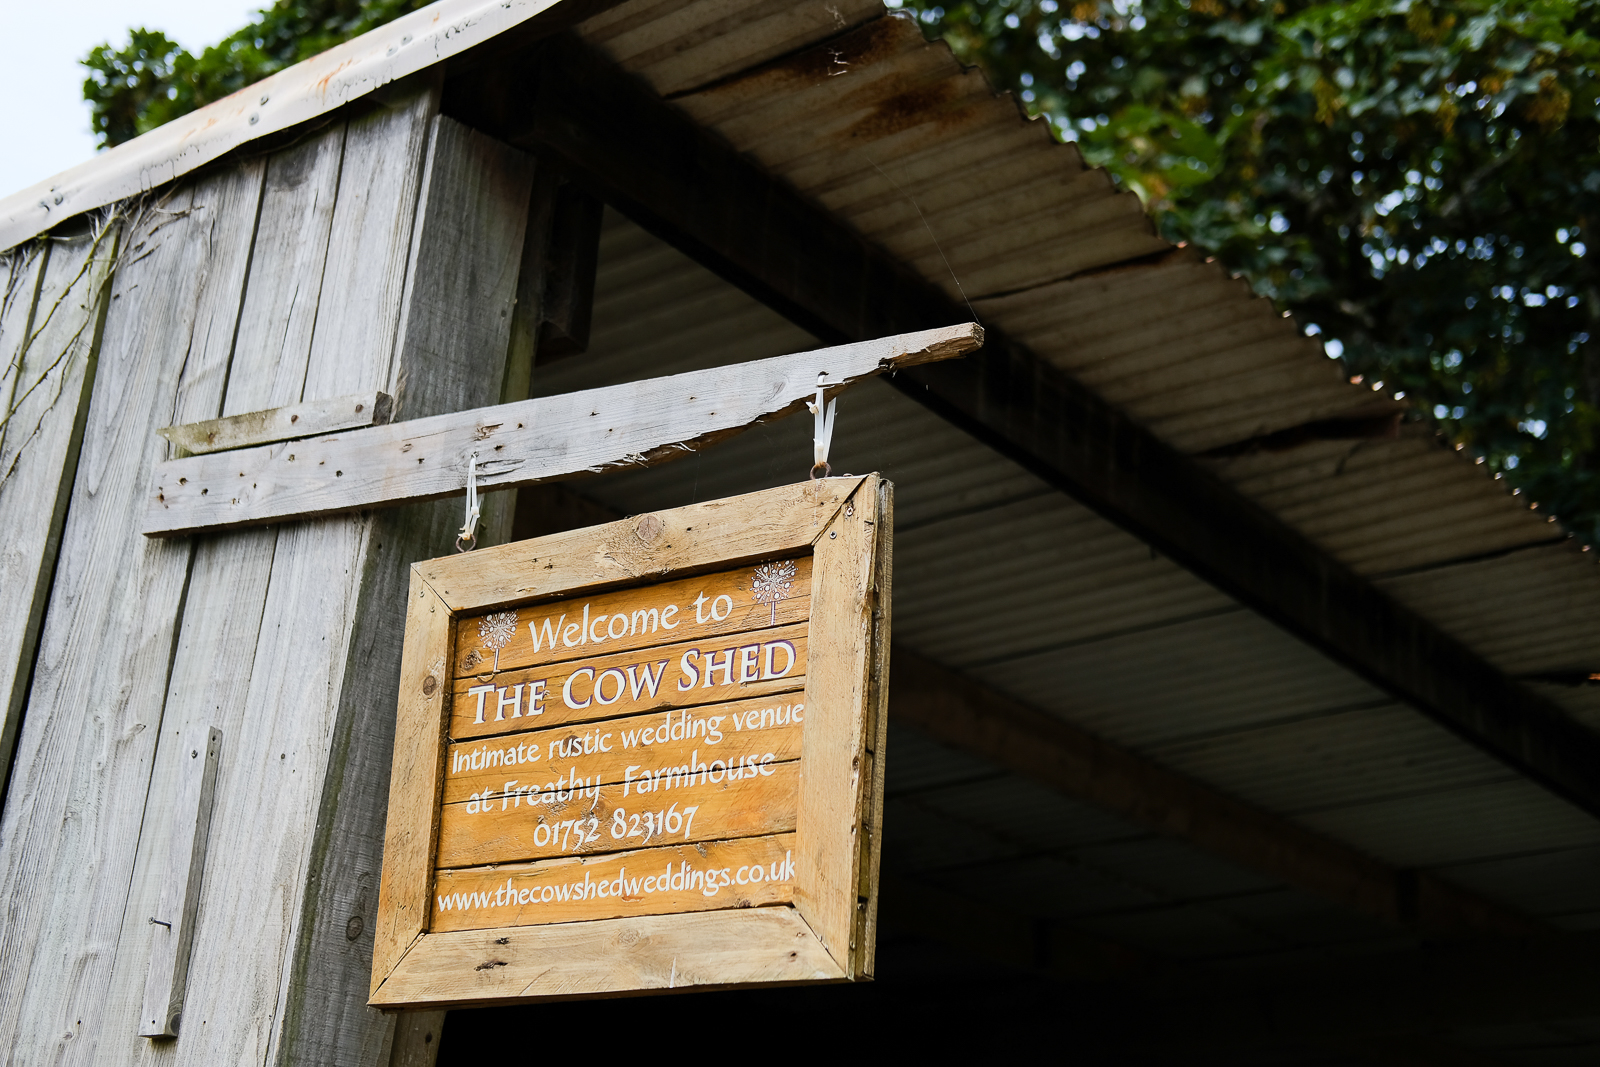 Rustic elopement at The Cow Shed in Cornwall 001.jpg